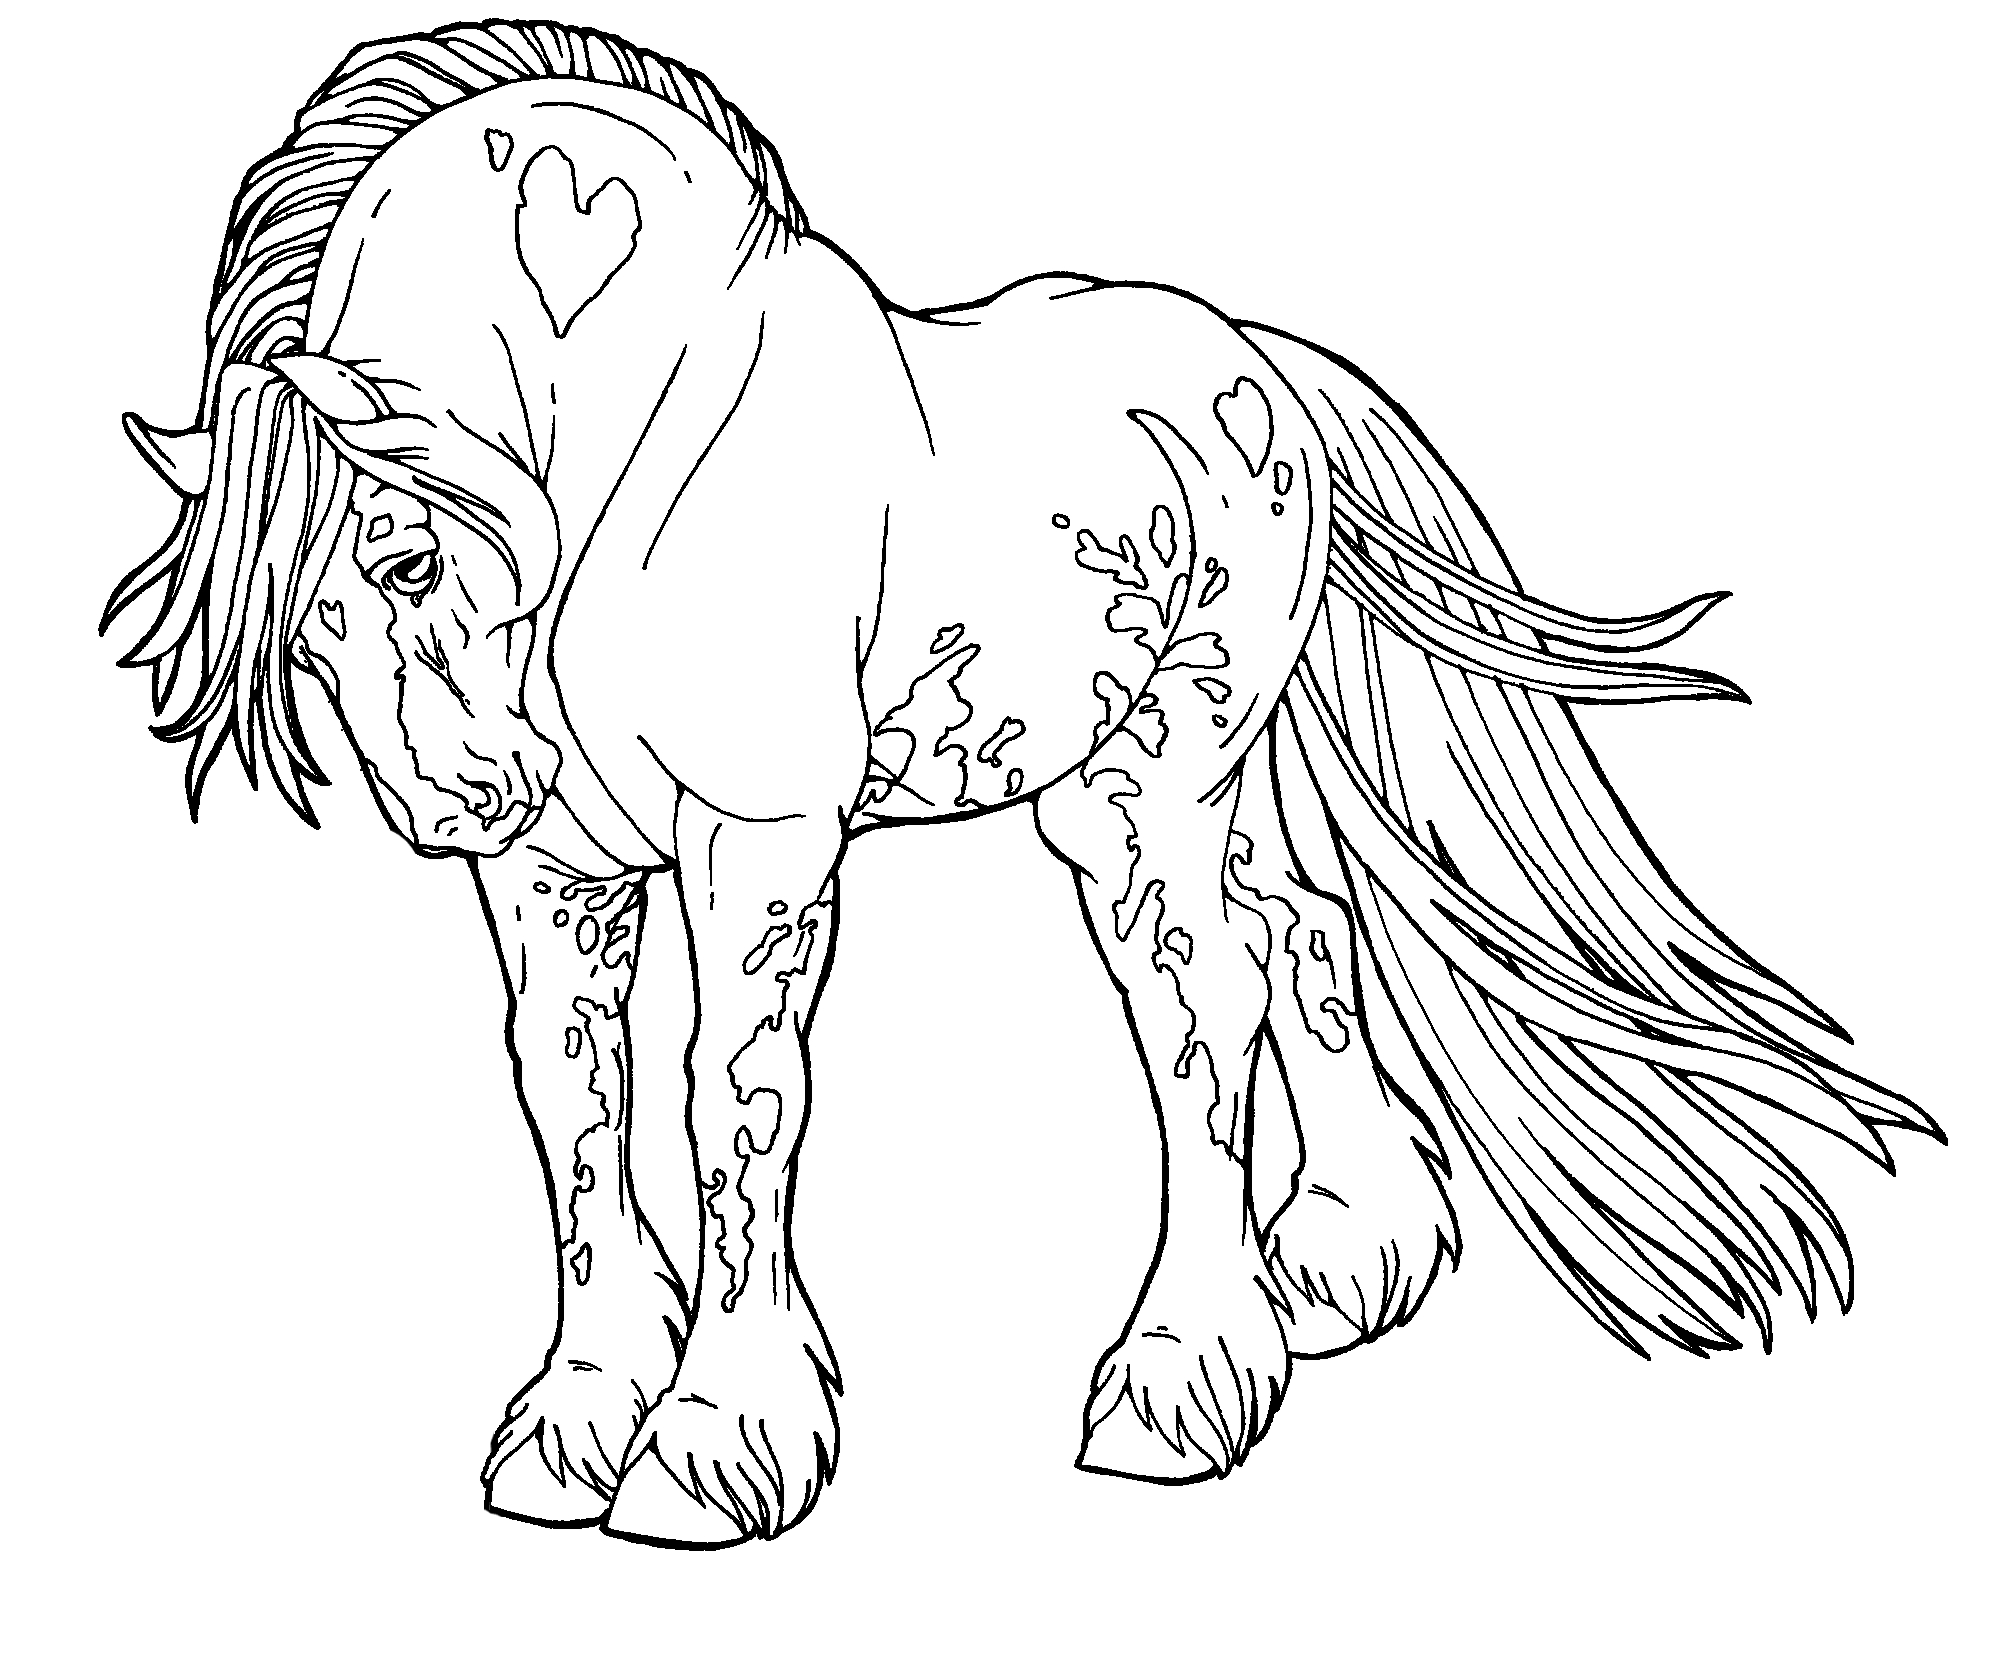 for coloring pictures free printable abstract coloring pages for adults coloring for pictures